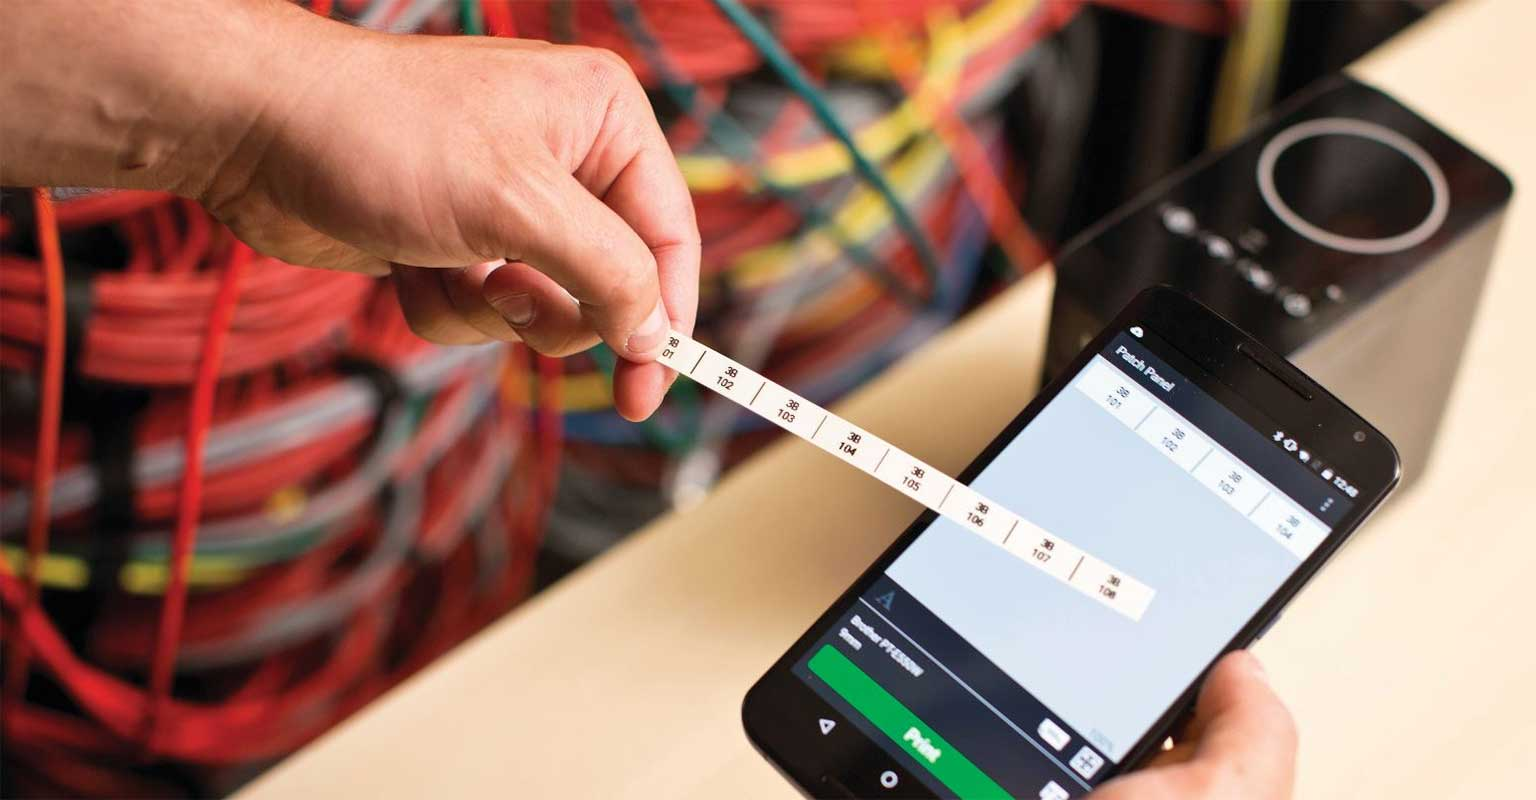 Cable label tool app on a smartphone with a printed Brother P-touch label